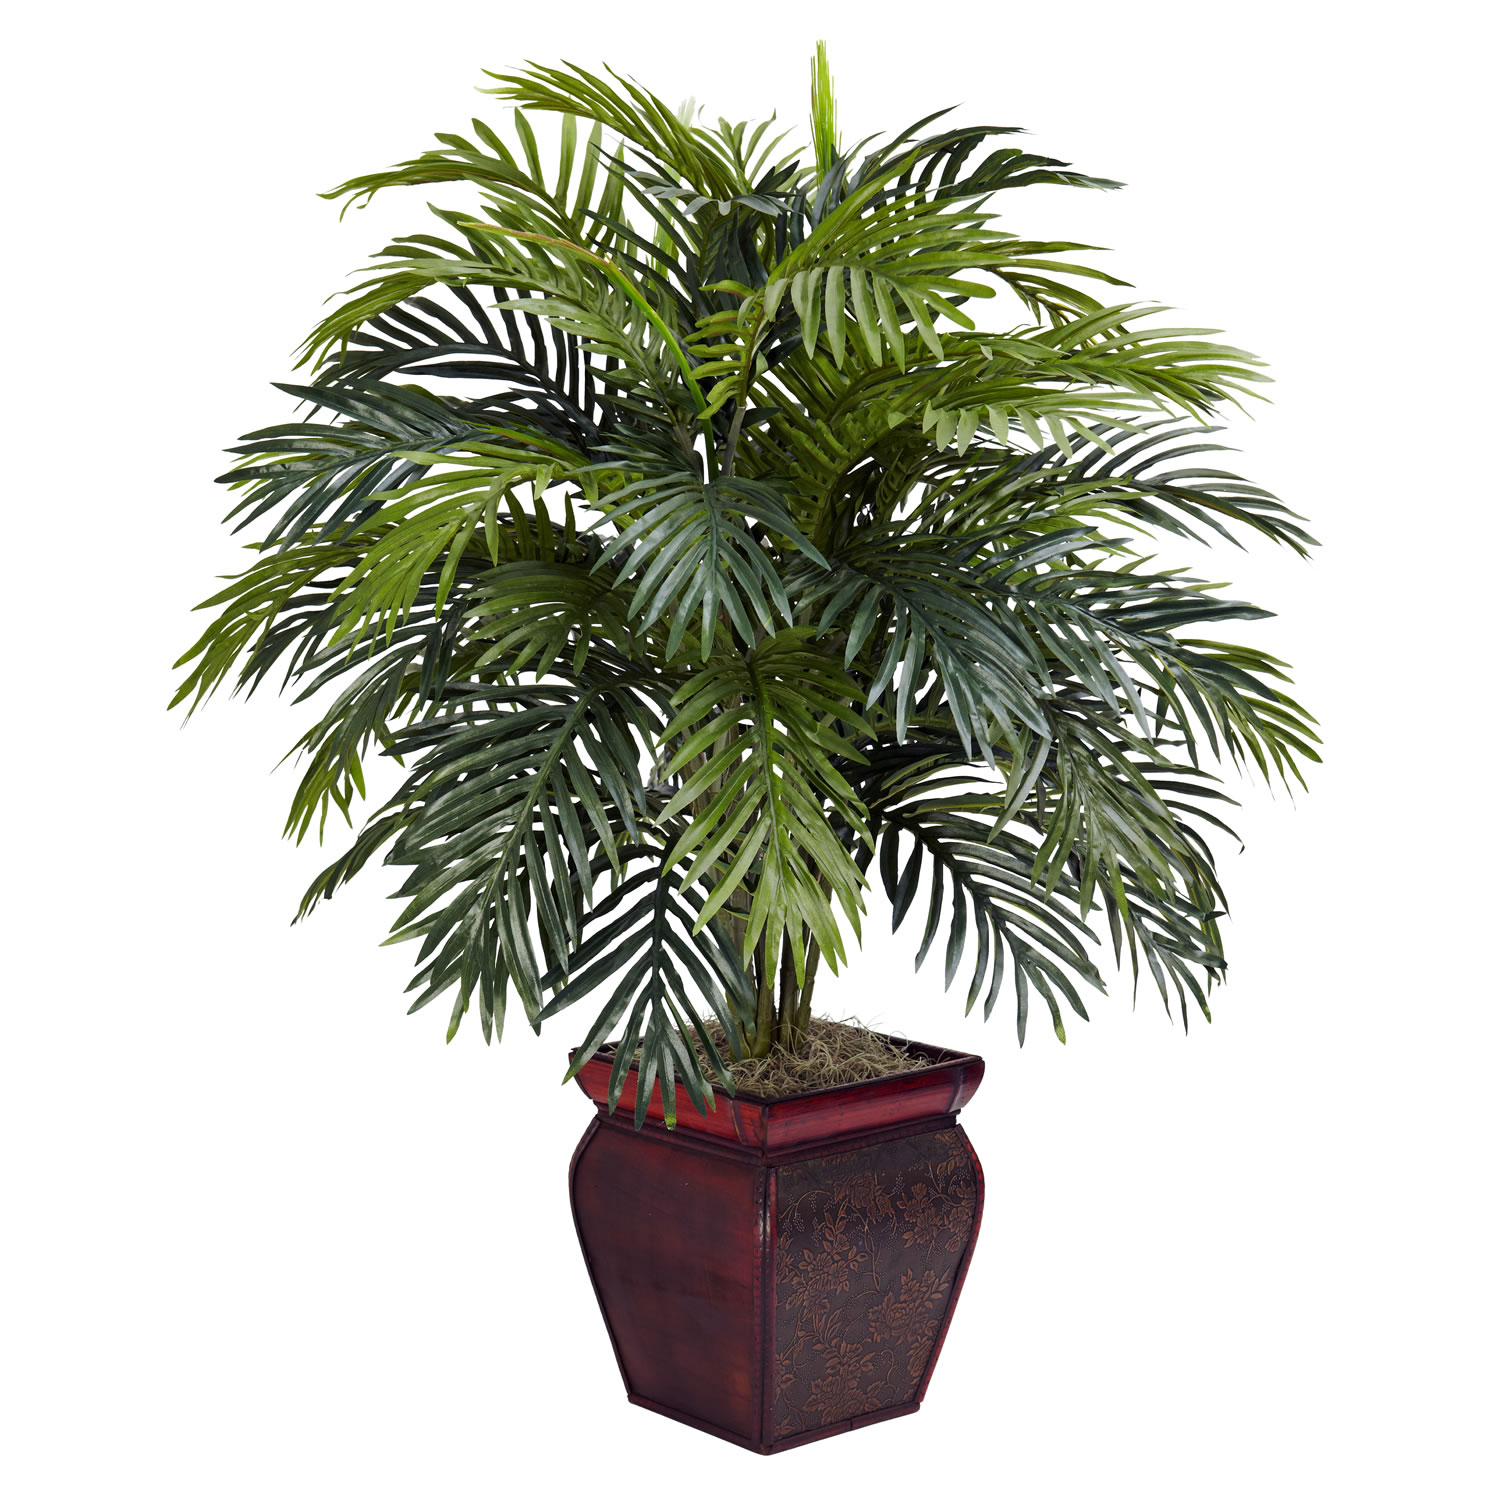 38 inch artificial areca plant in decorative planter | 6686 Fake Interior Plants